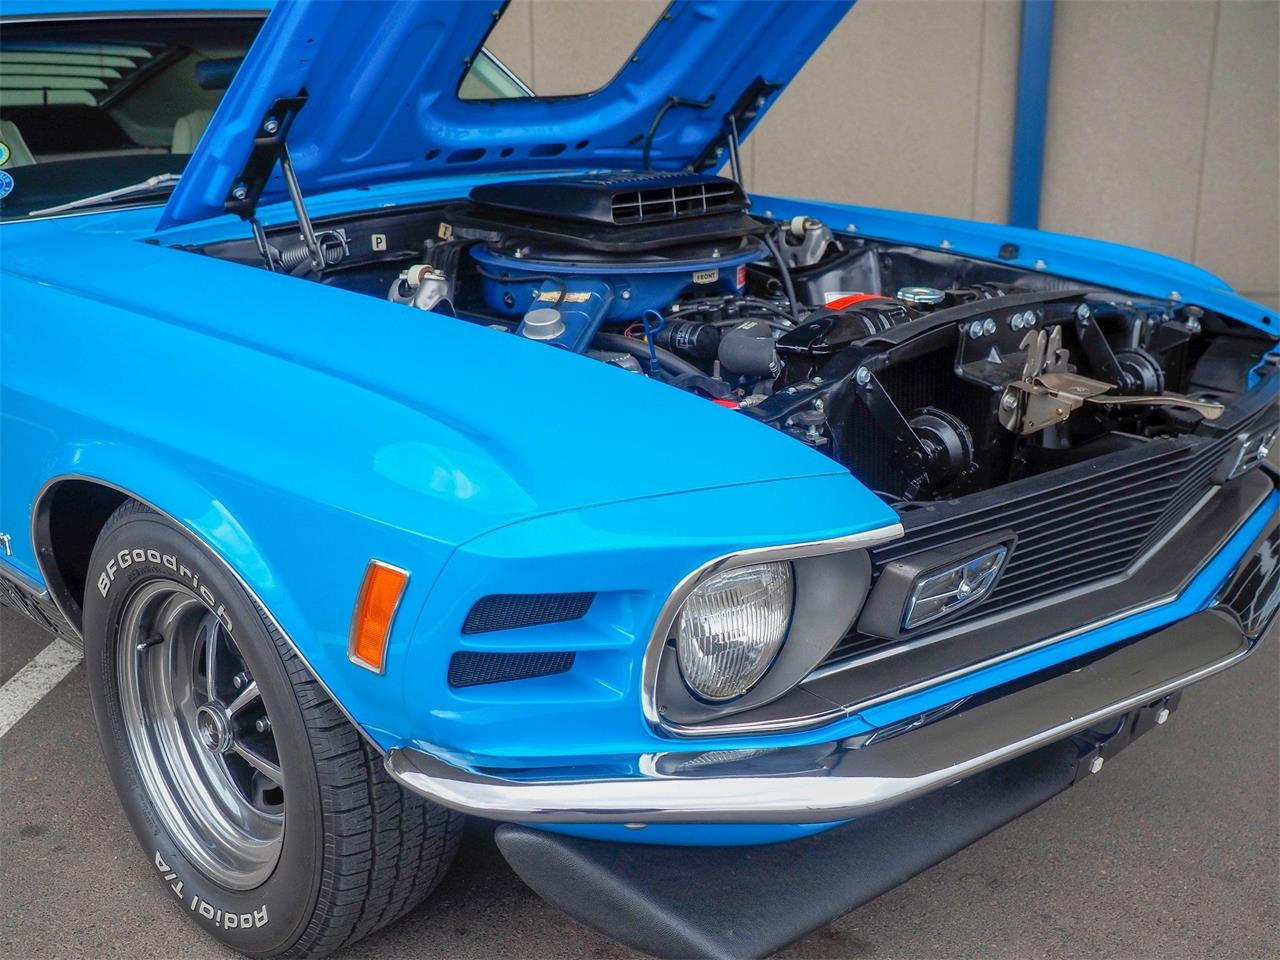 1970 Ford Mustang Mach 1 (CC-1218504) for sale in Englewood, Colorado